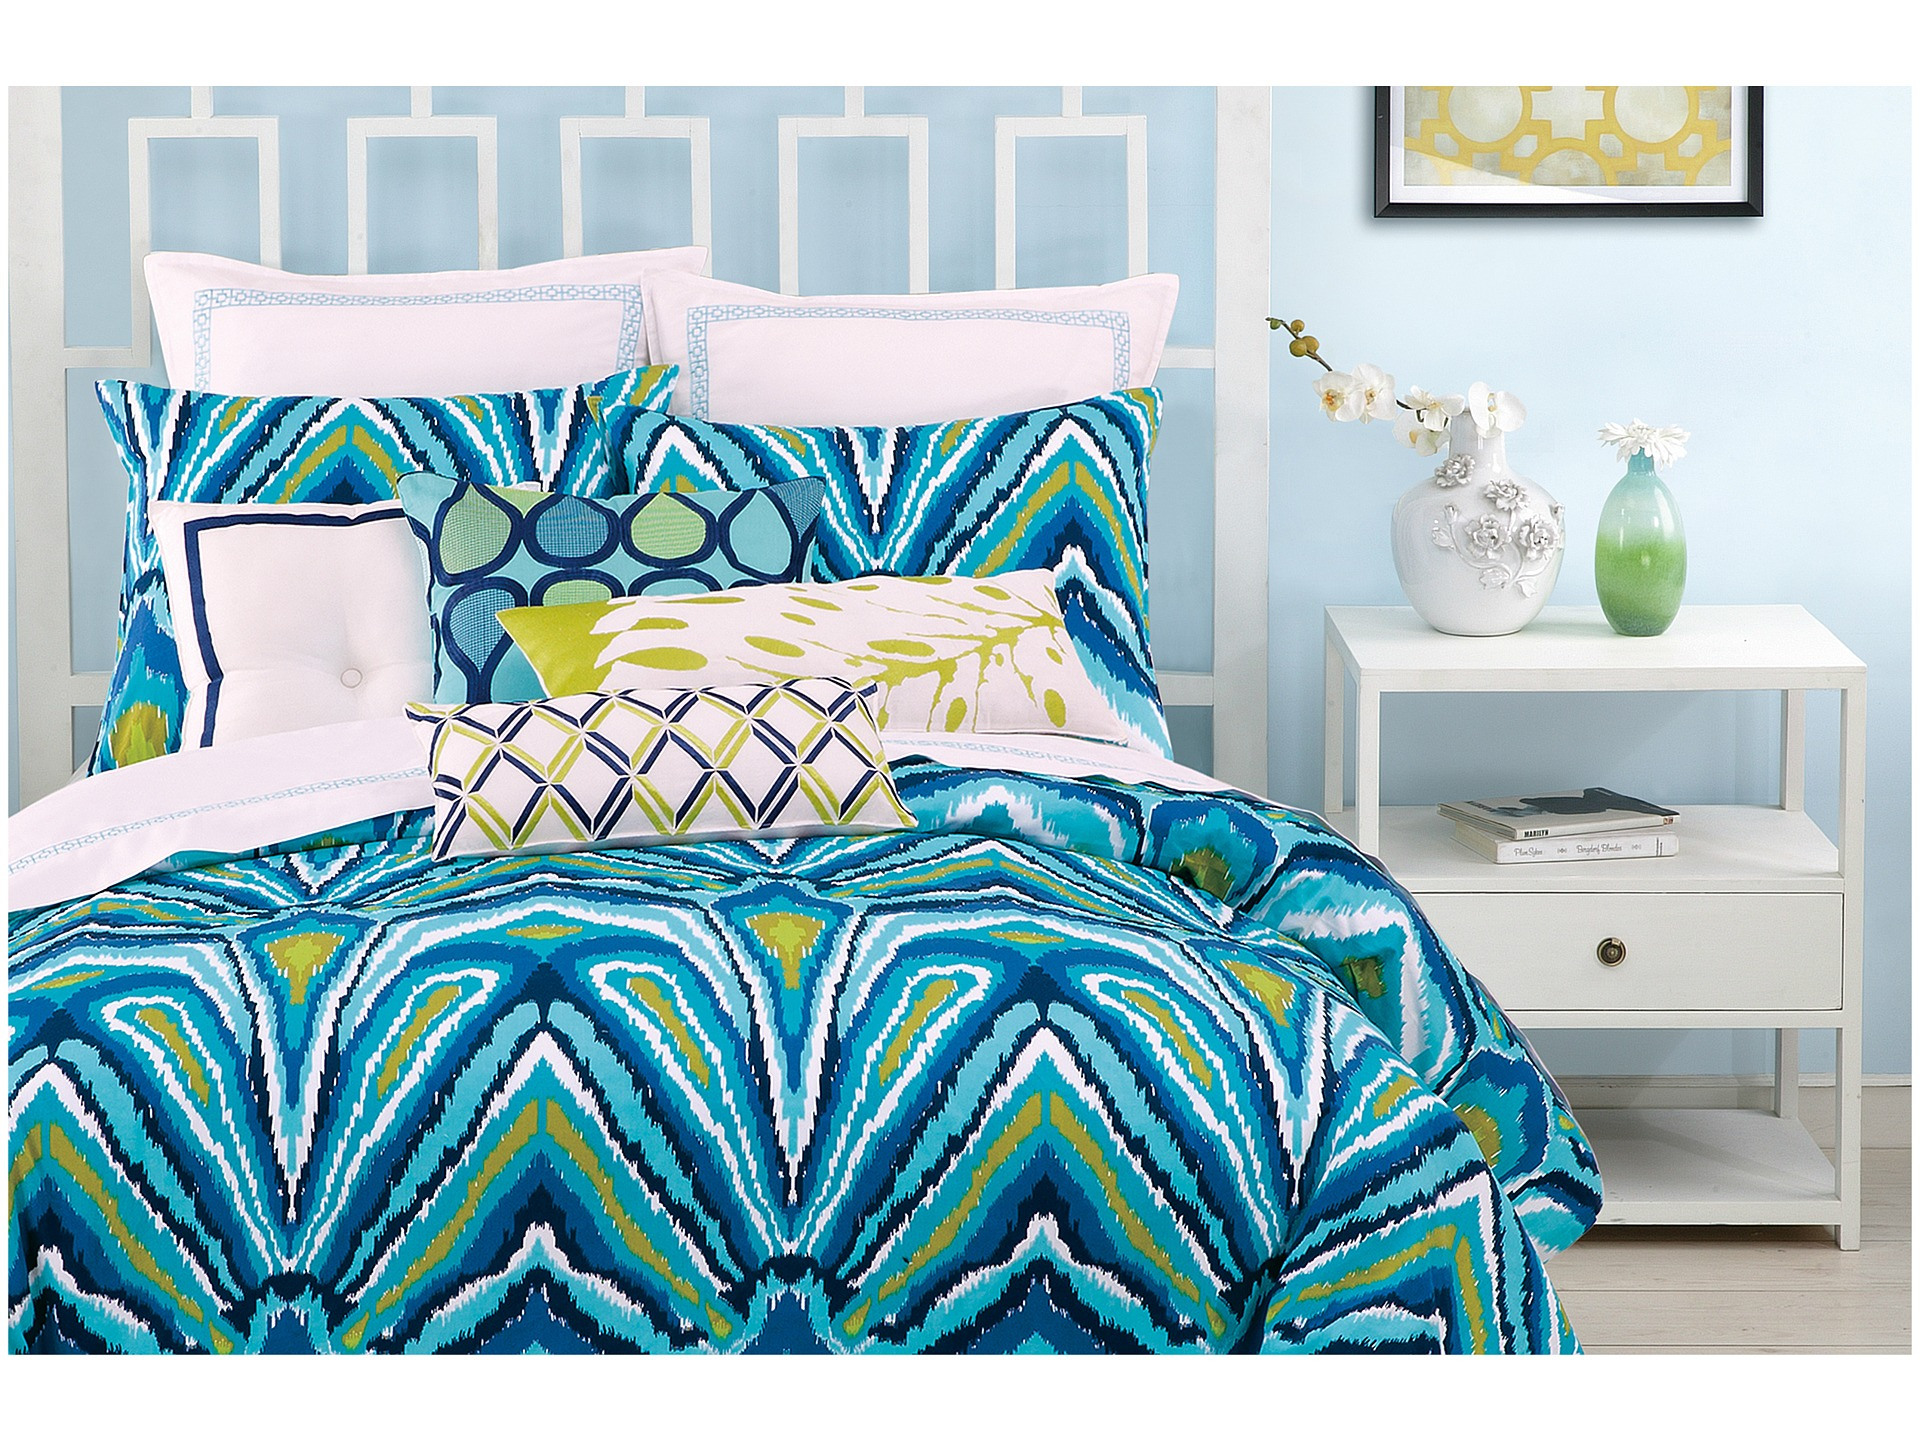 Peacock blue bedding set total fab peacock themed peacock colored comforter and bedding sets - Peacock bedspreads ...